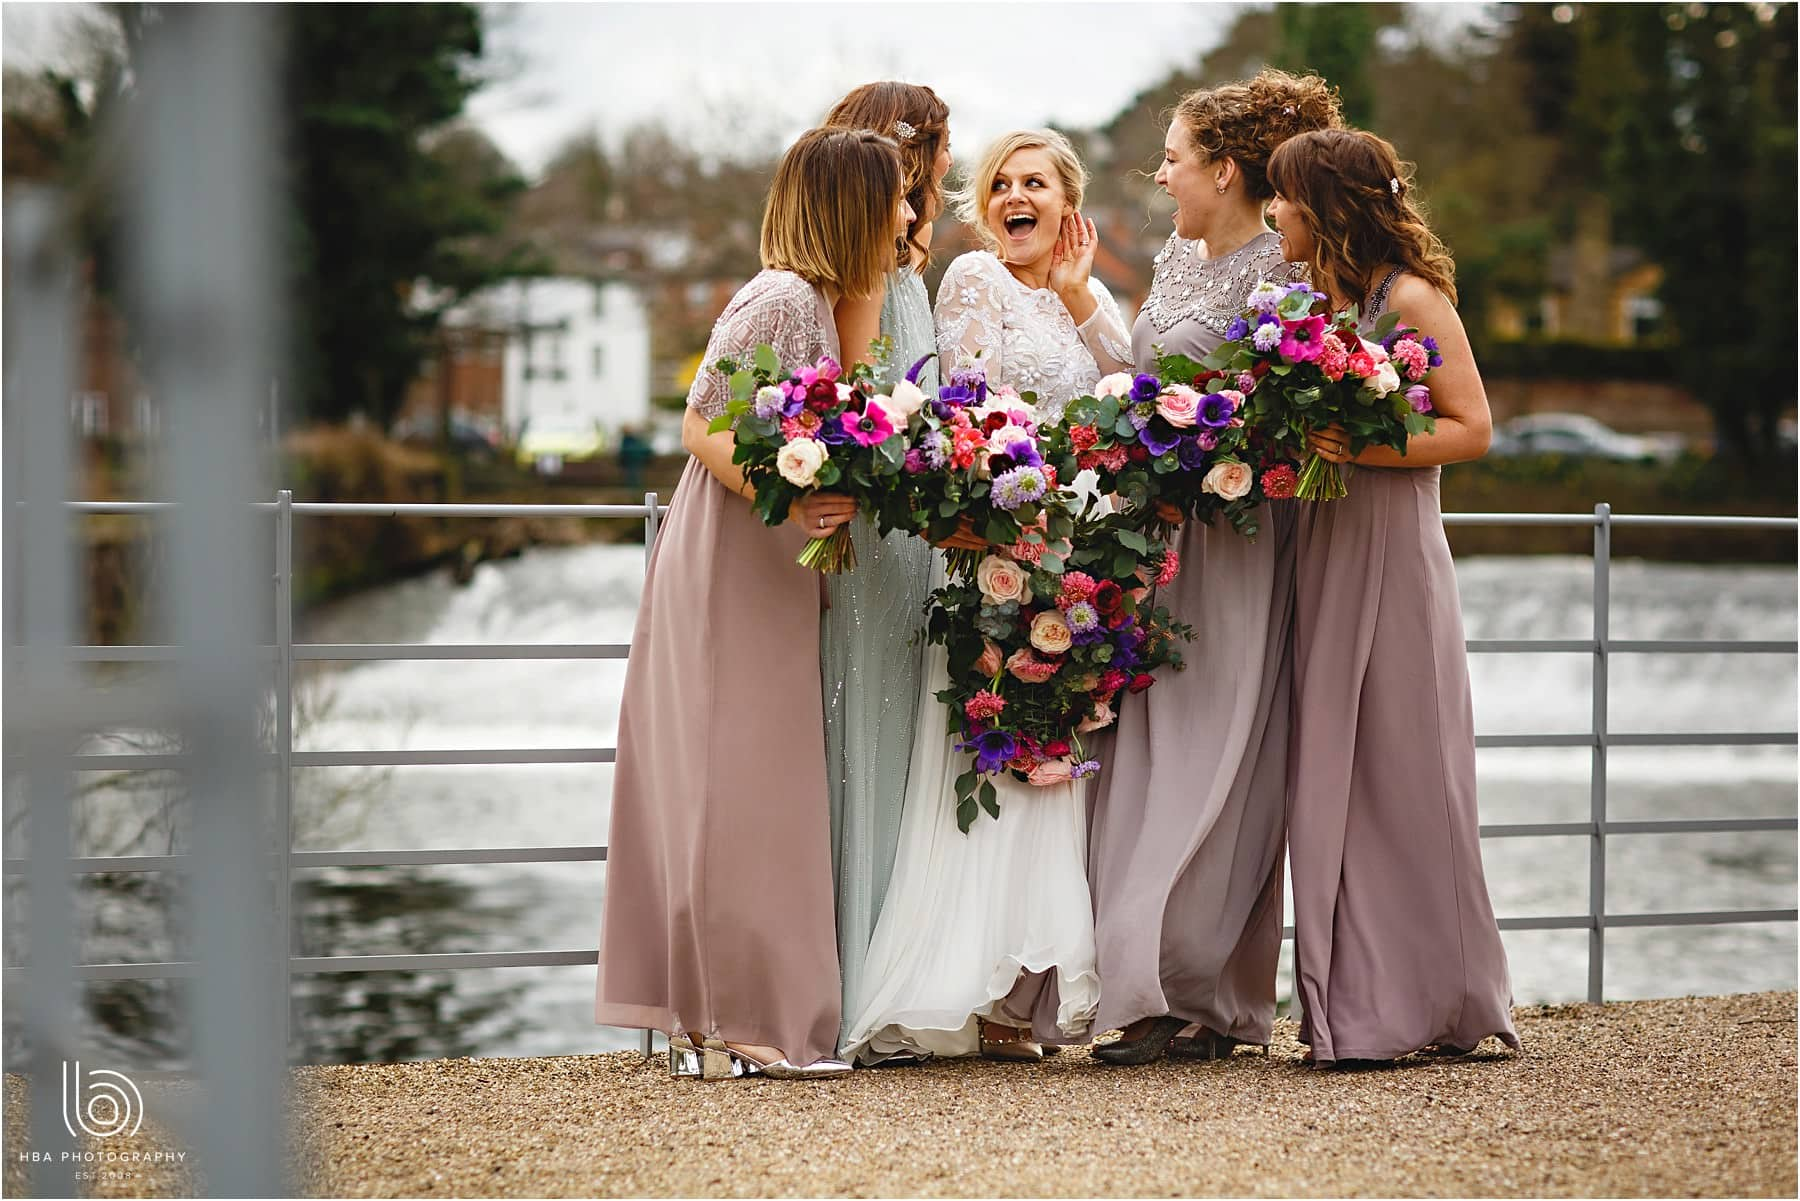 the bride and her bridesmaids by the river